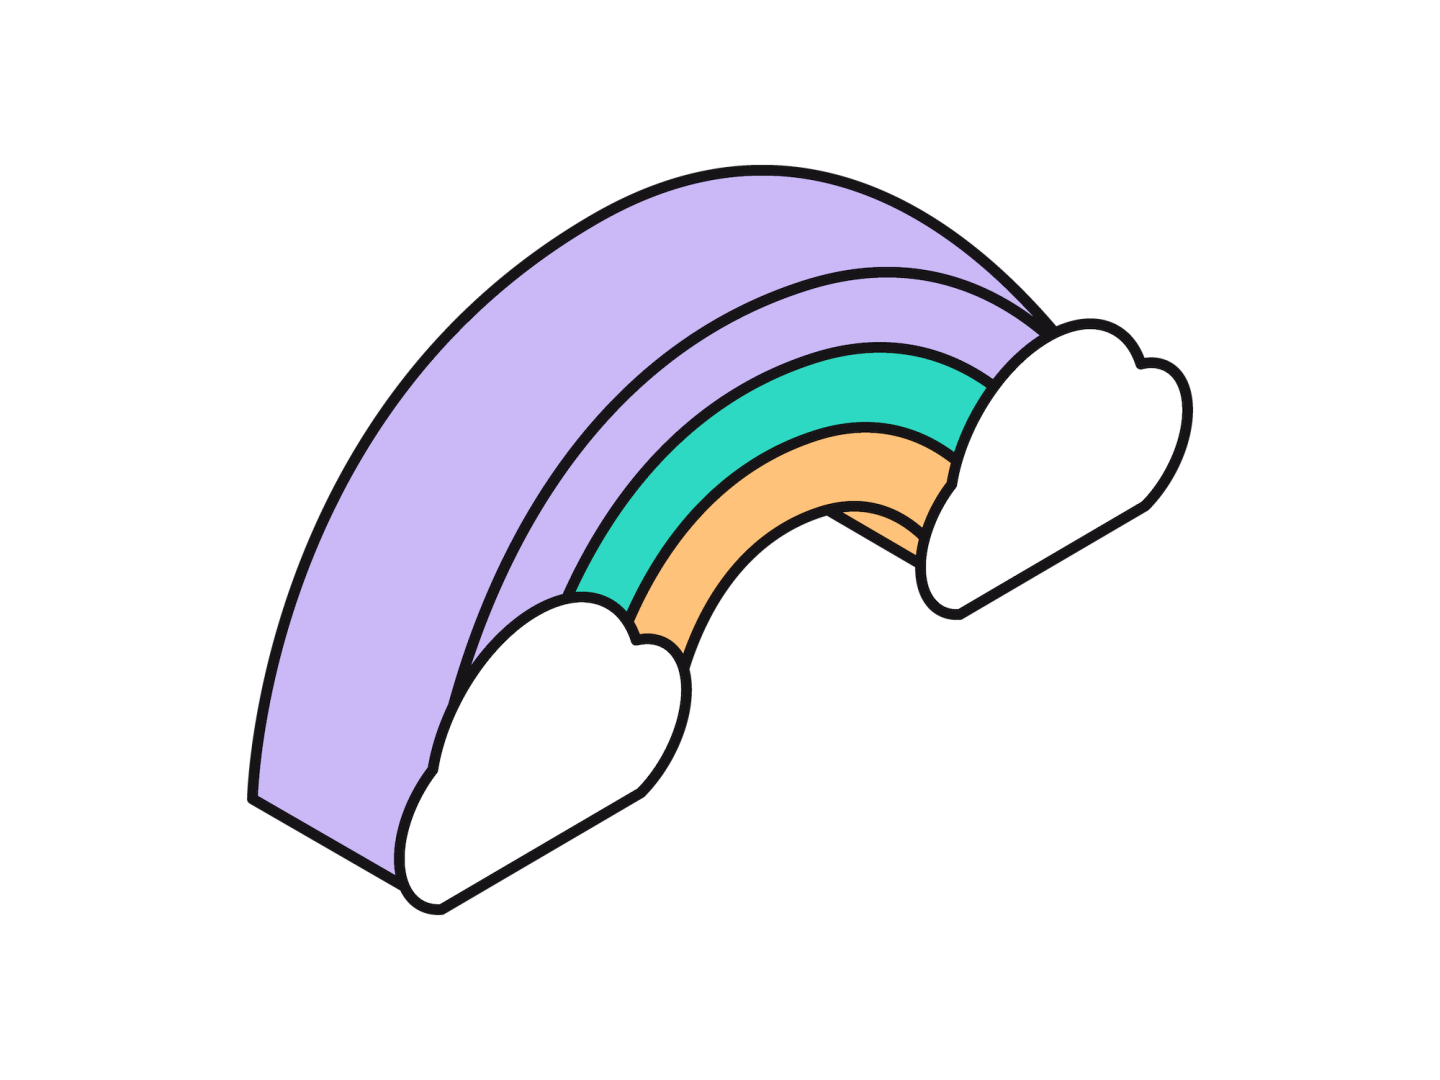 An isometric illustration of a rainbow in purple, teal and gold